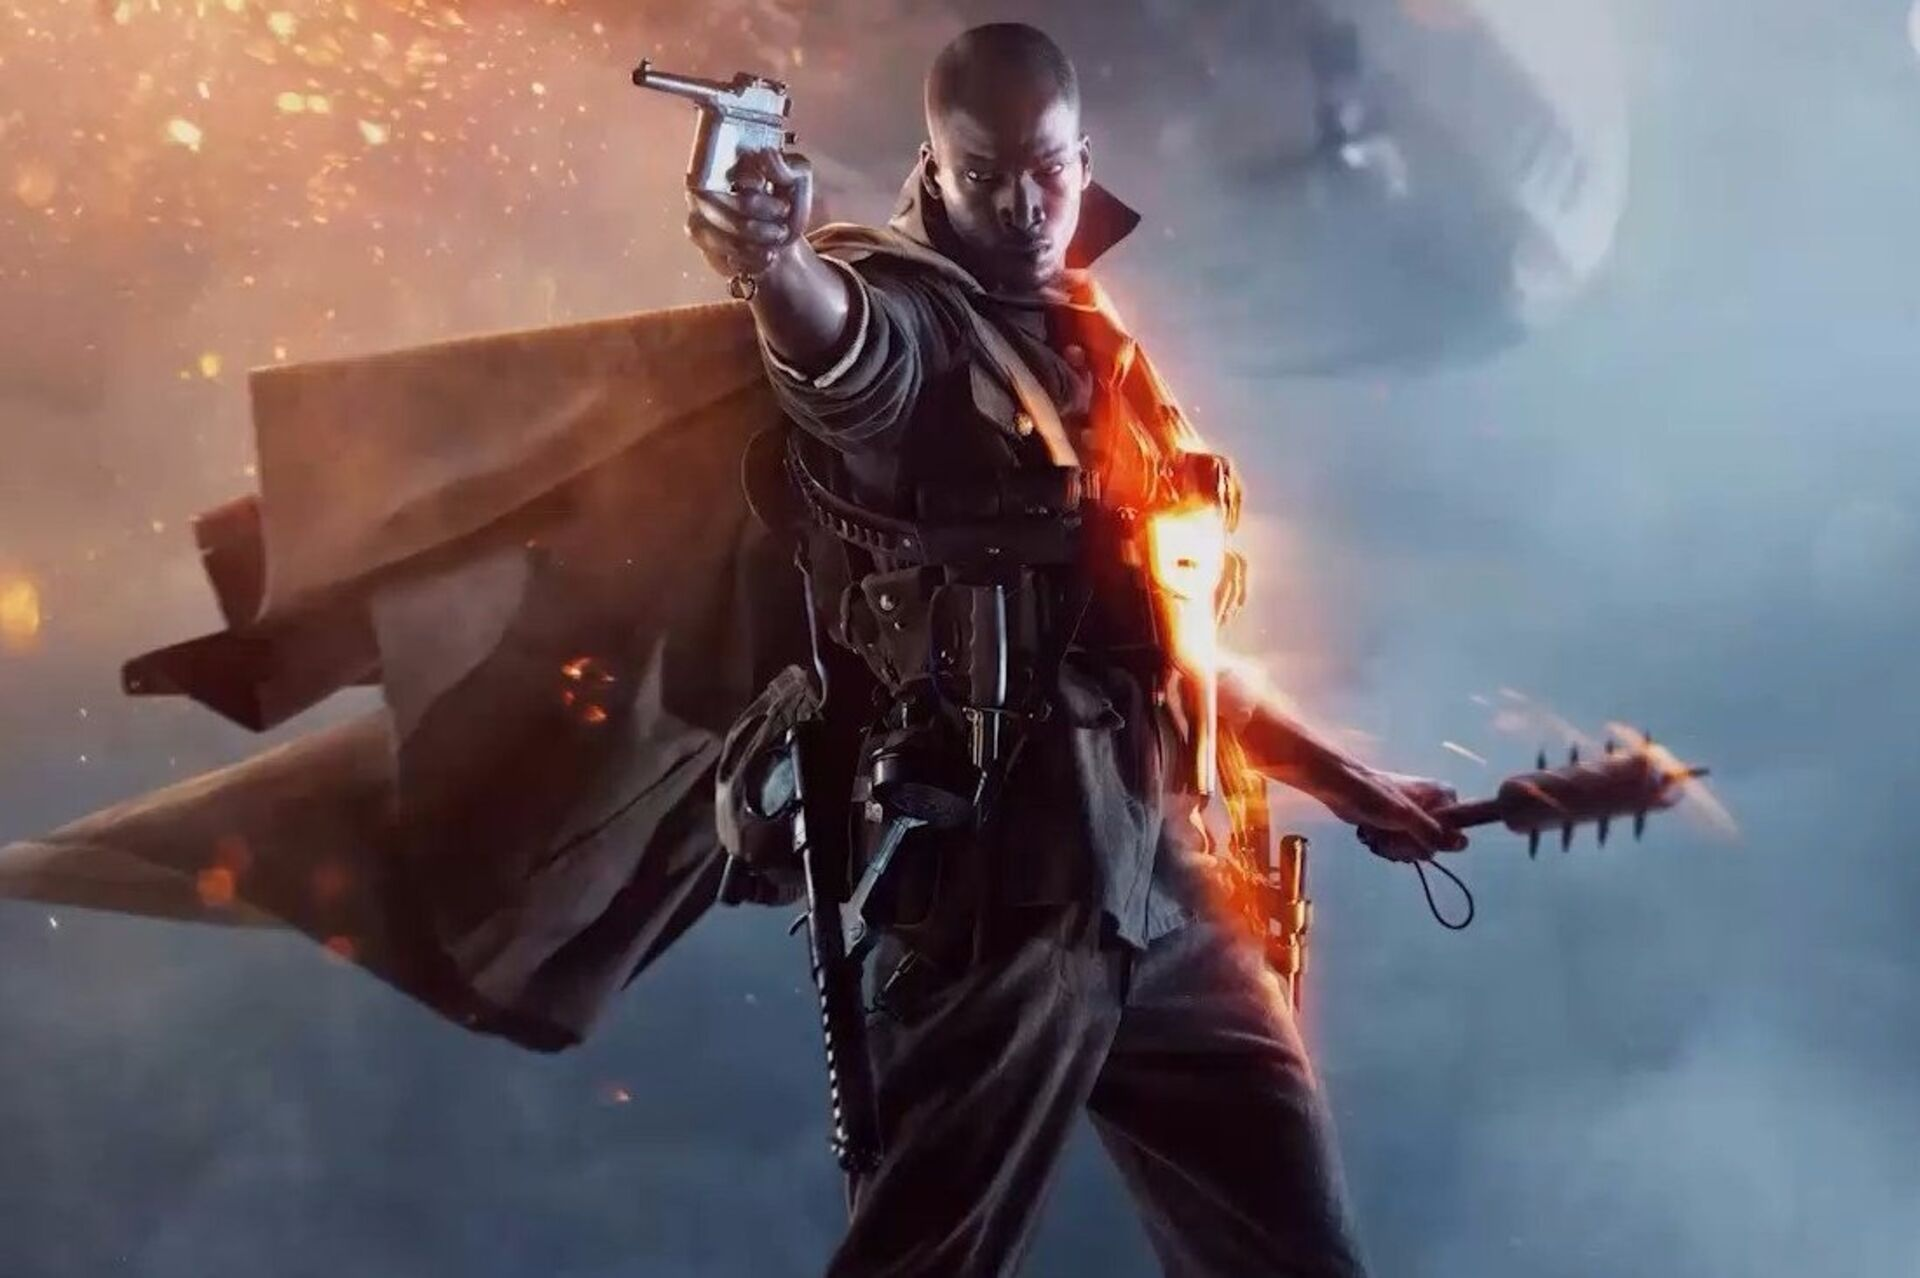 Digital Foundry: Hands-on with console Battlefield 1